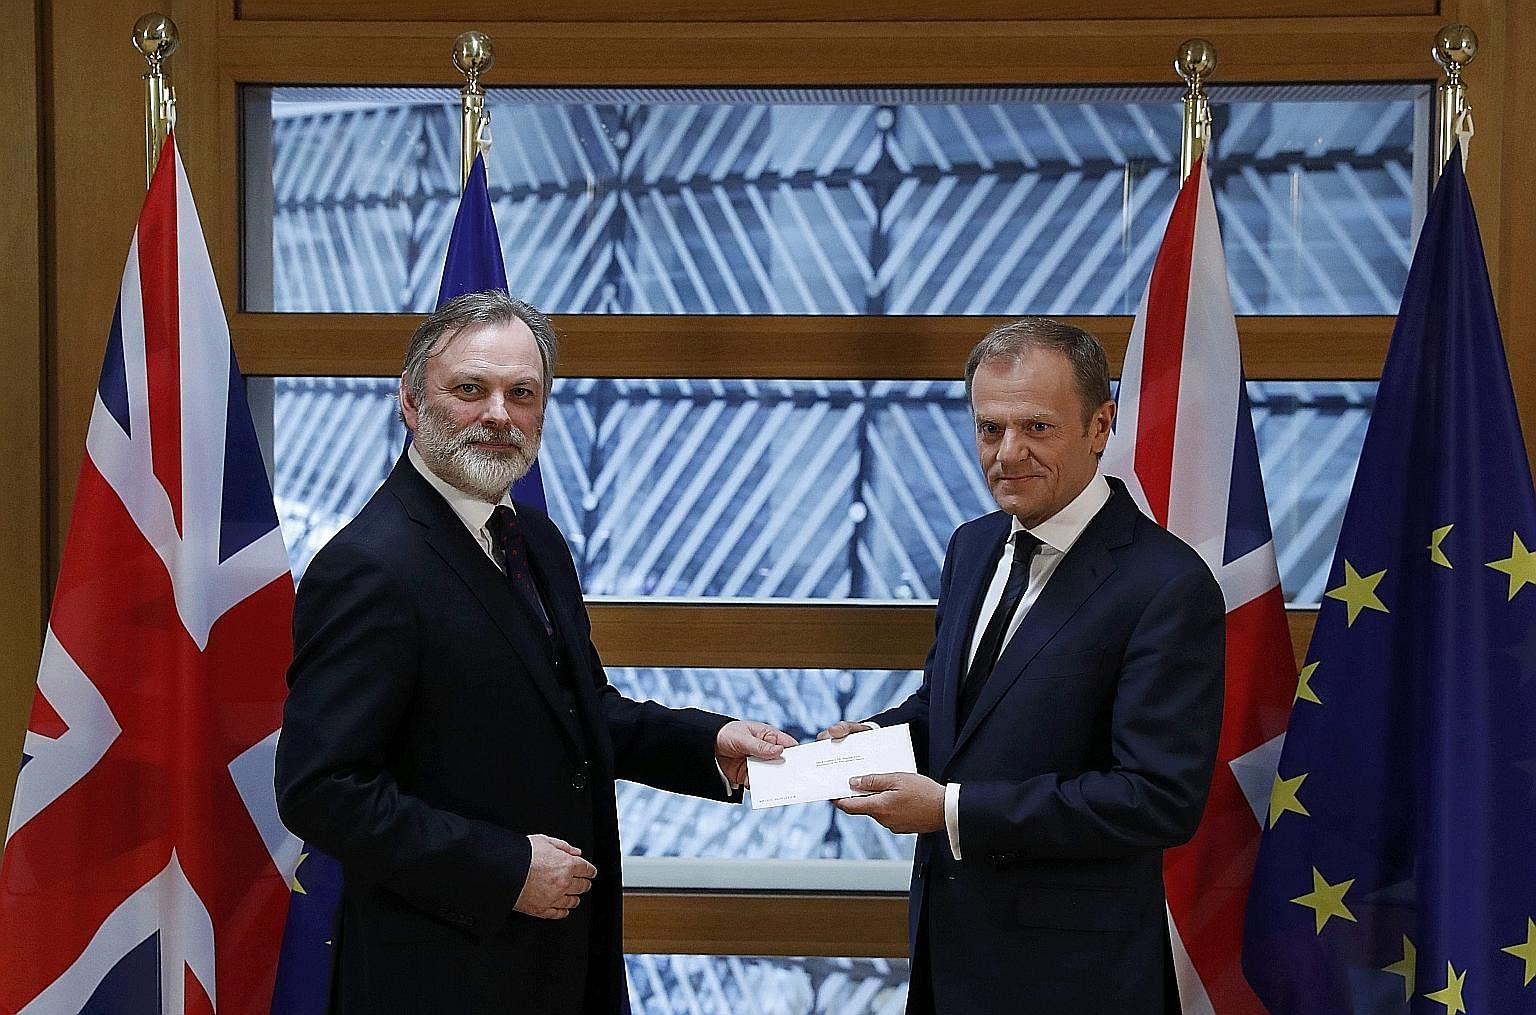 Britain's permanent representative to the European Union Tim Barrow (at left) delivering British Prime Minister Theresa May's Brexit letter to EU Council President Donald Tusk in Brussels yesterday.